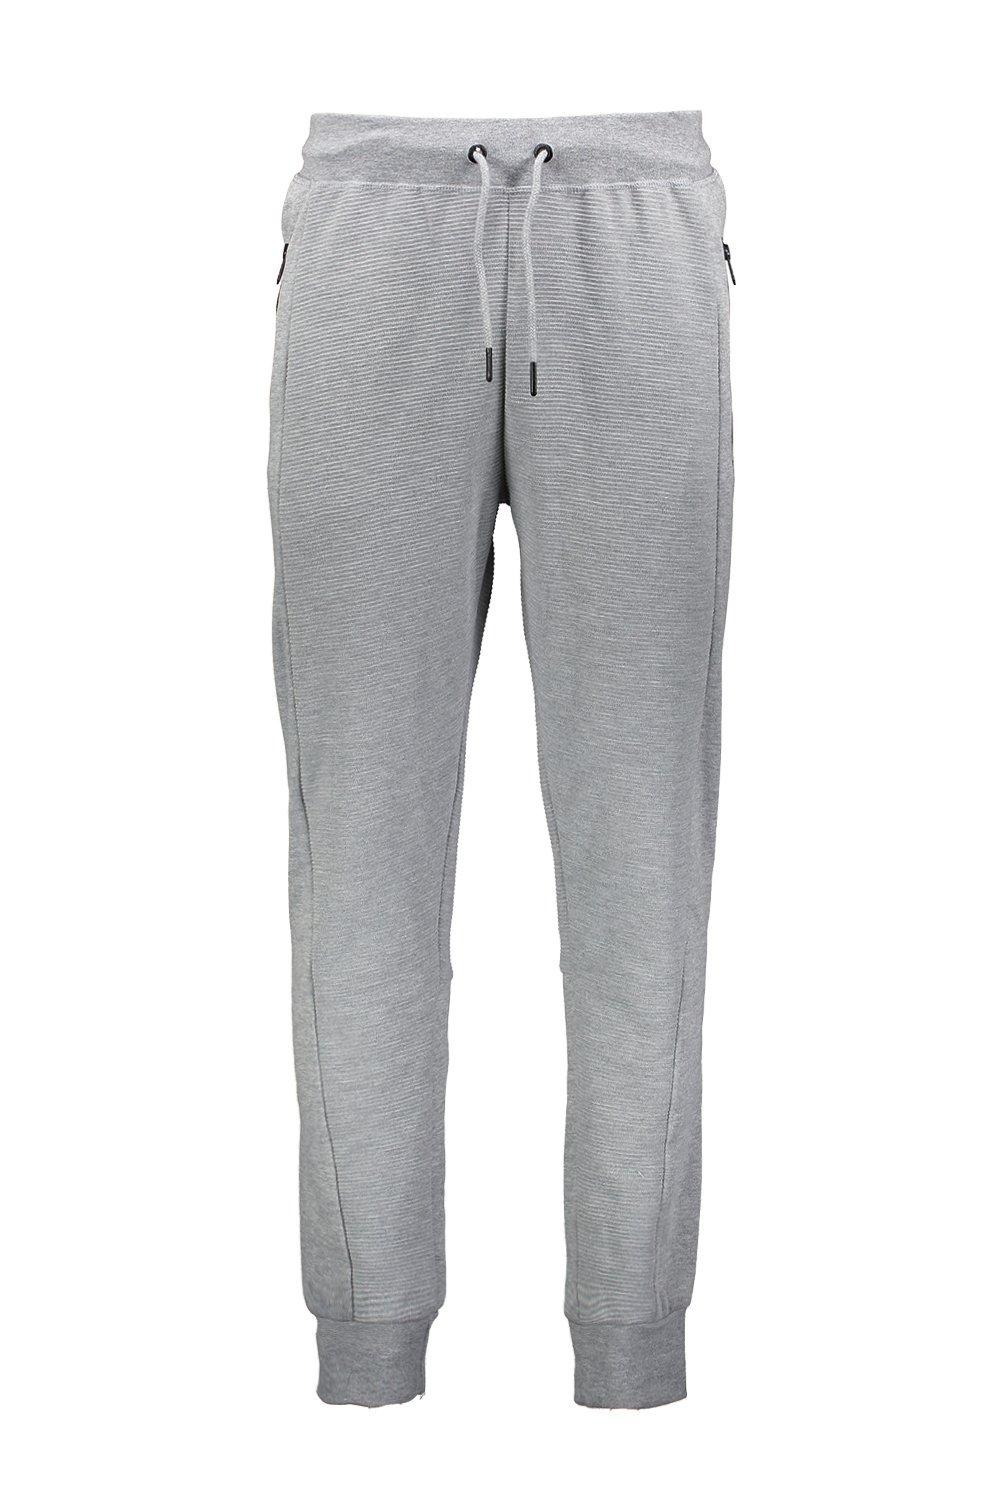 Jersey Panel grey marl Checked Side Joggers nE86qp8Ux